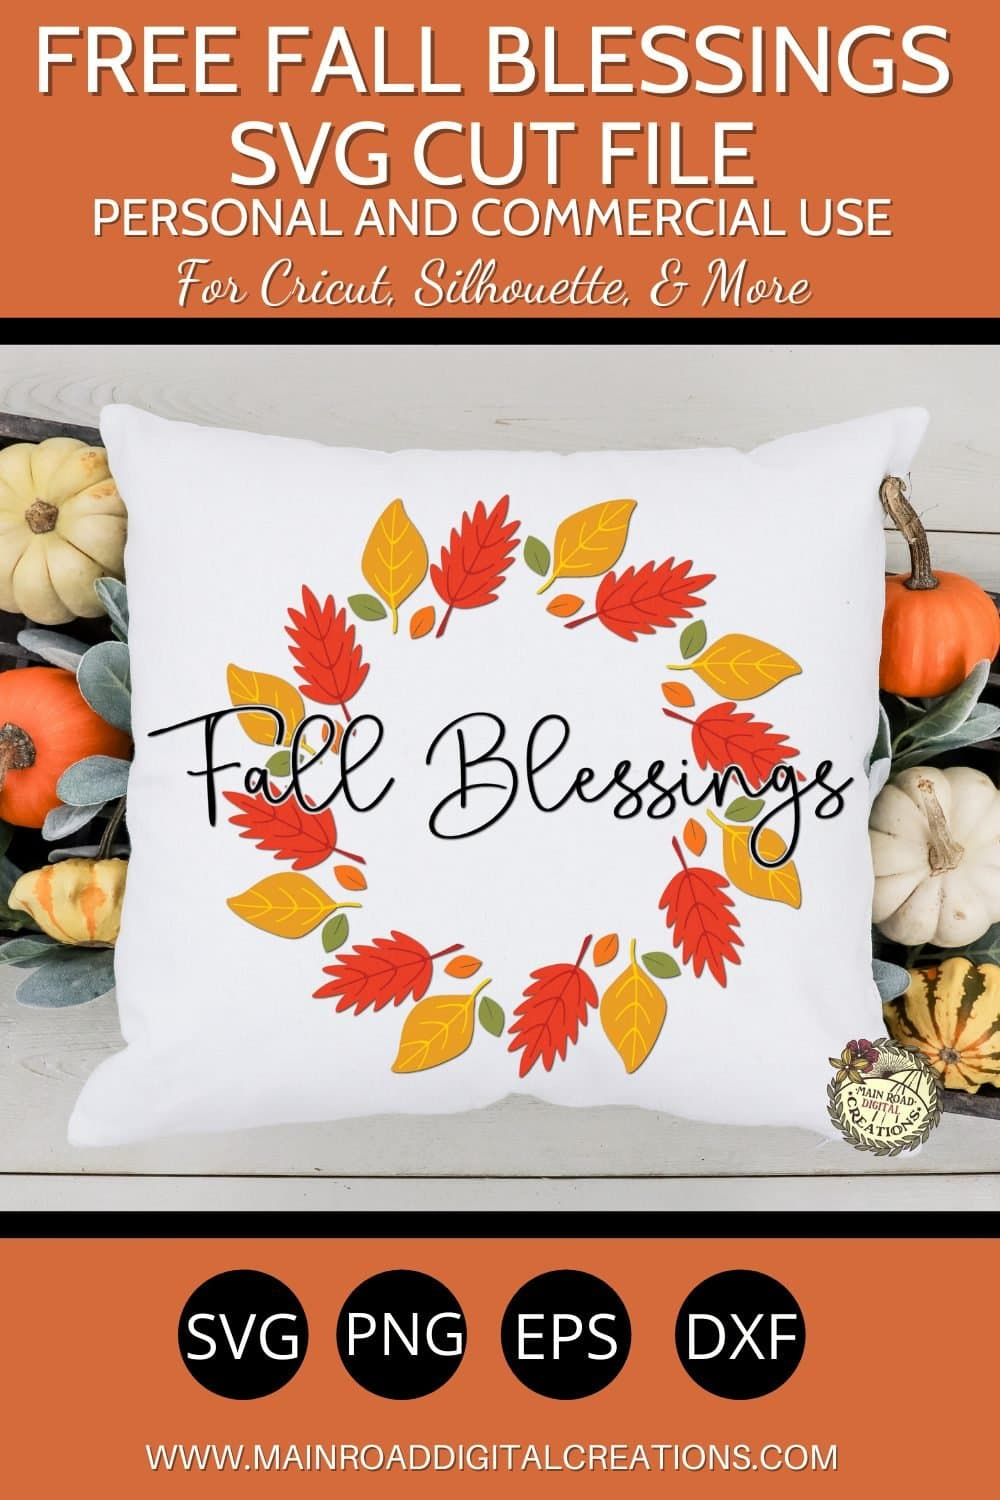 fall svg, fall blessings svg, fall svg free, free fall blessings svg, leaf svg free, autumn svg free, october svg free, october clipart free, blessings svg